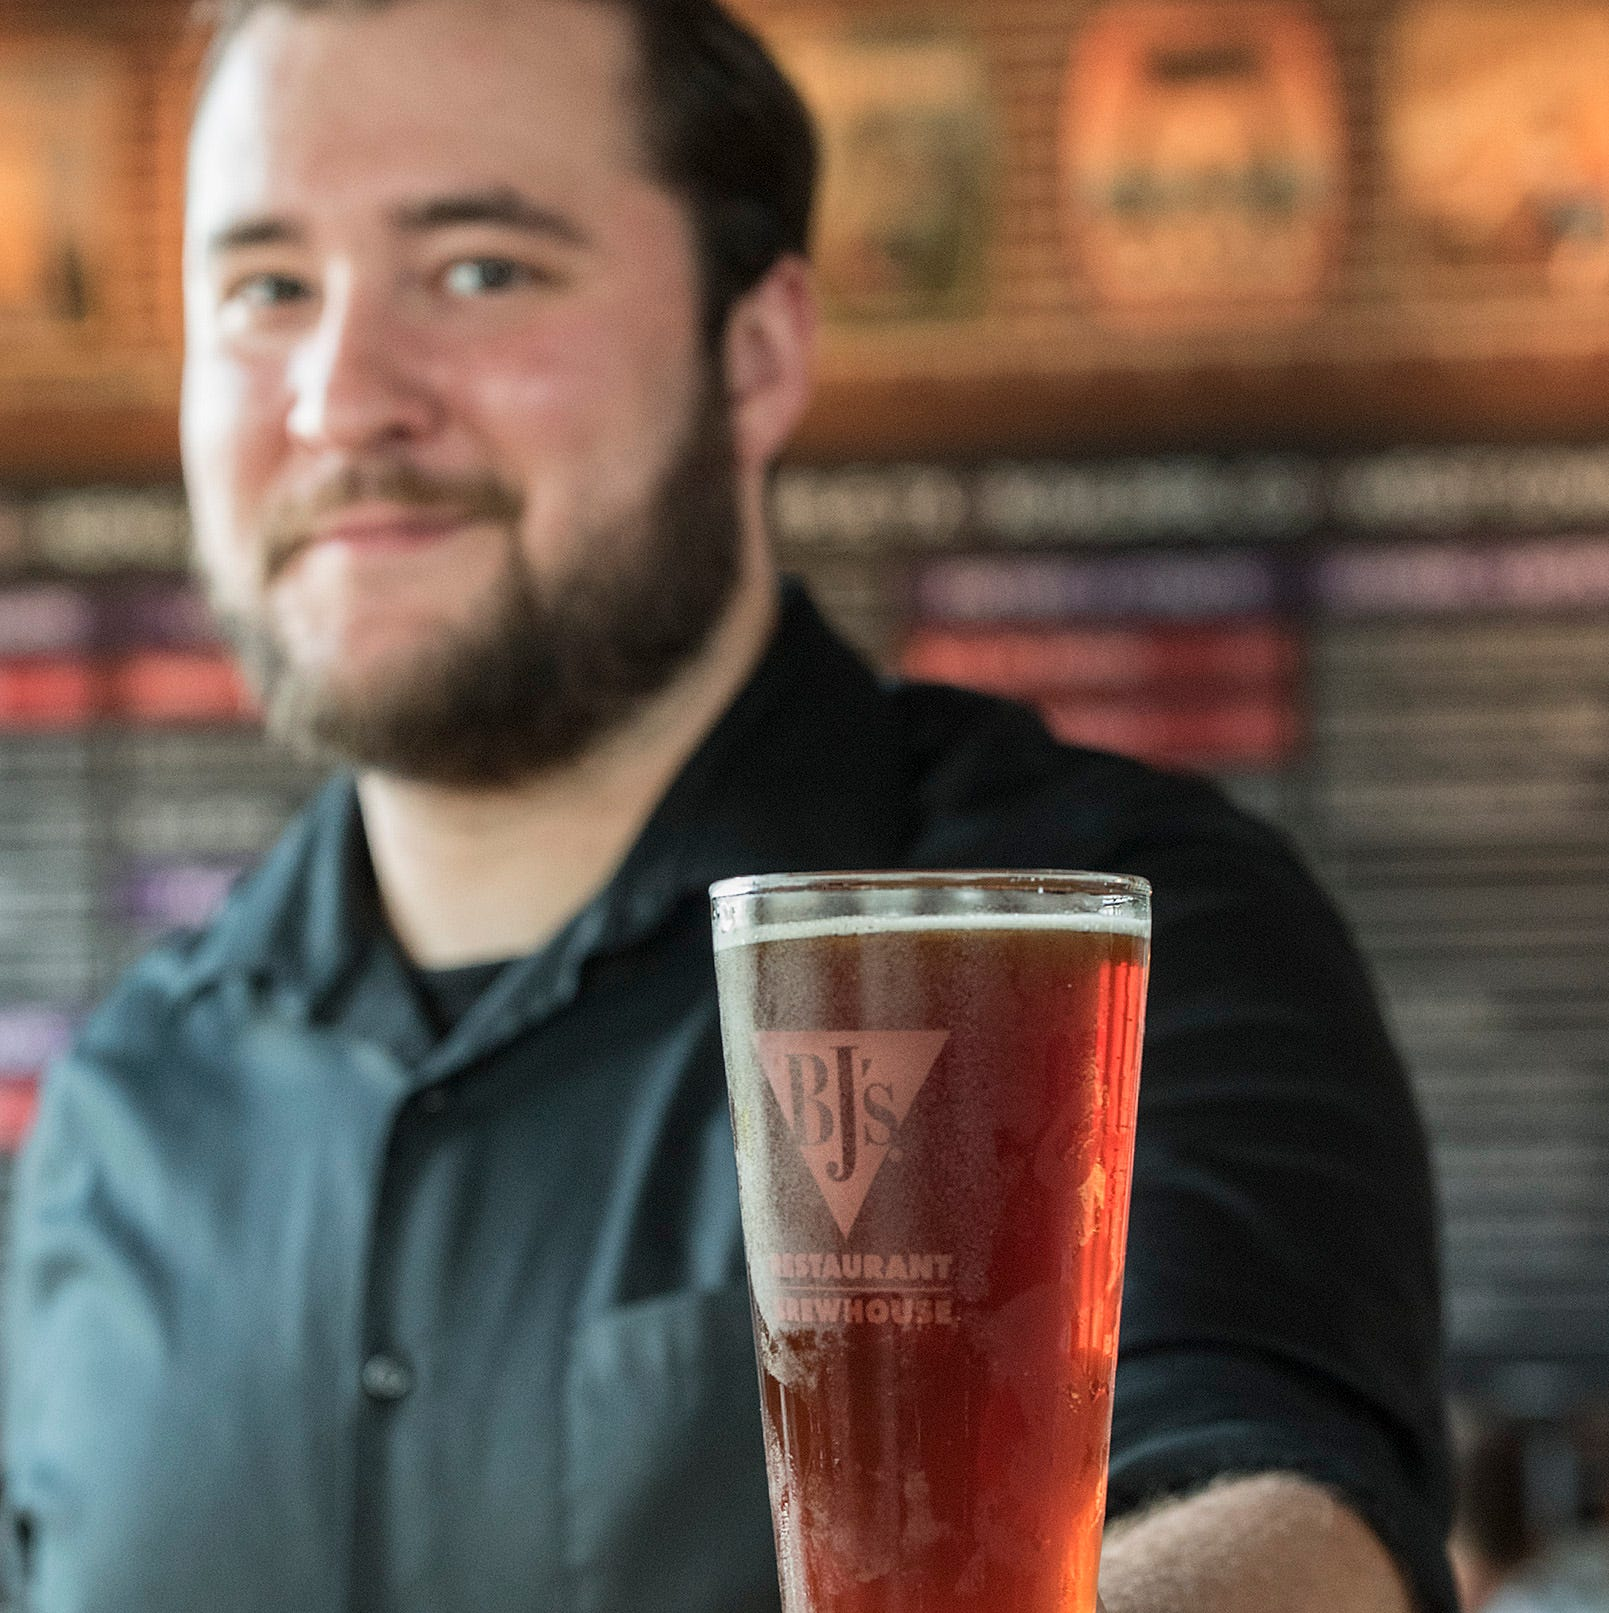 BJ's Restaurant & Brewhouse opens in Livonia to big crowds